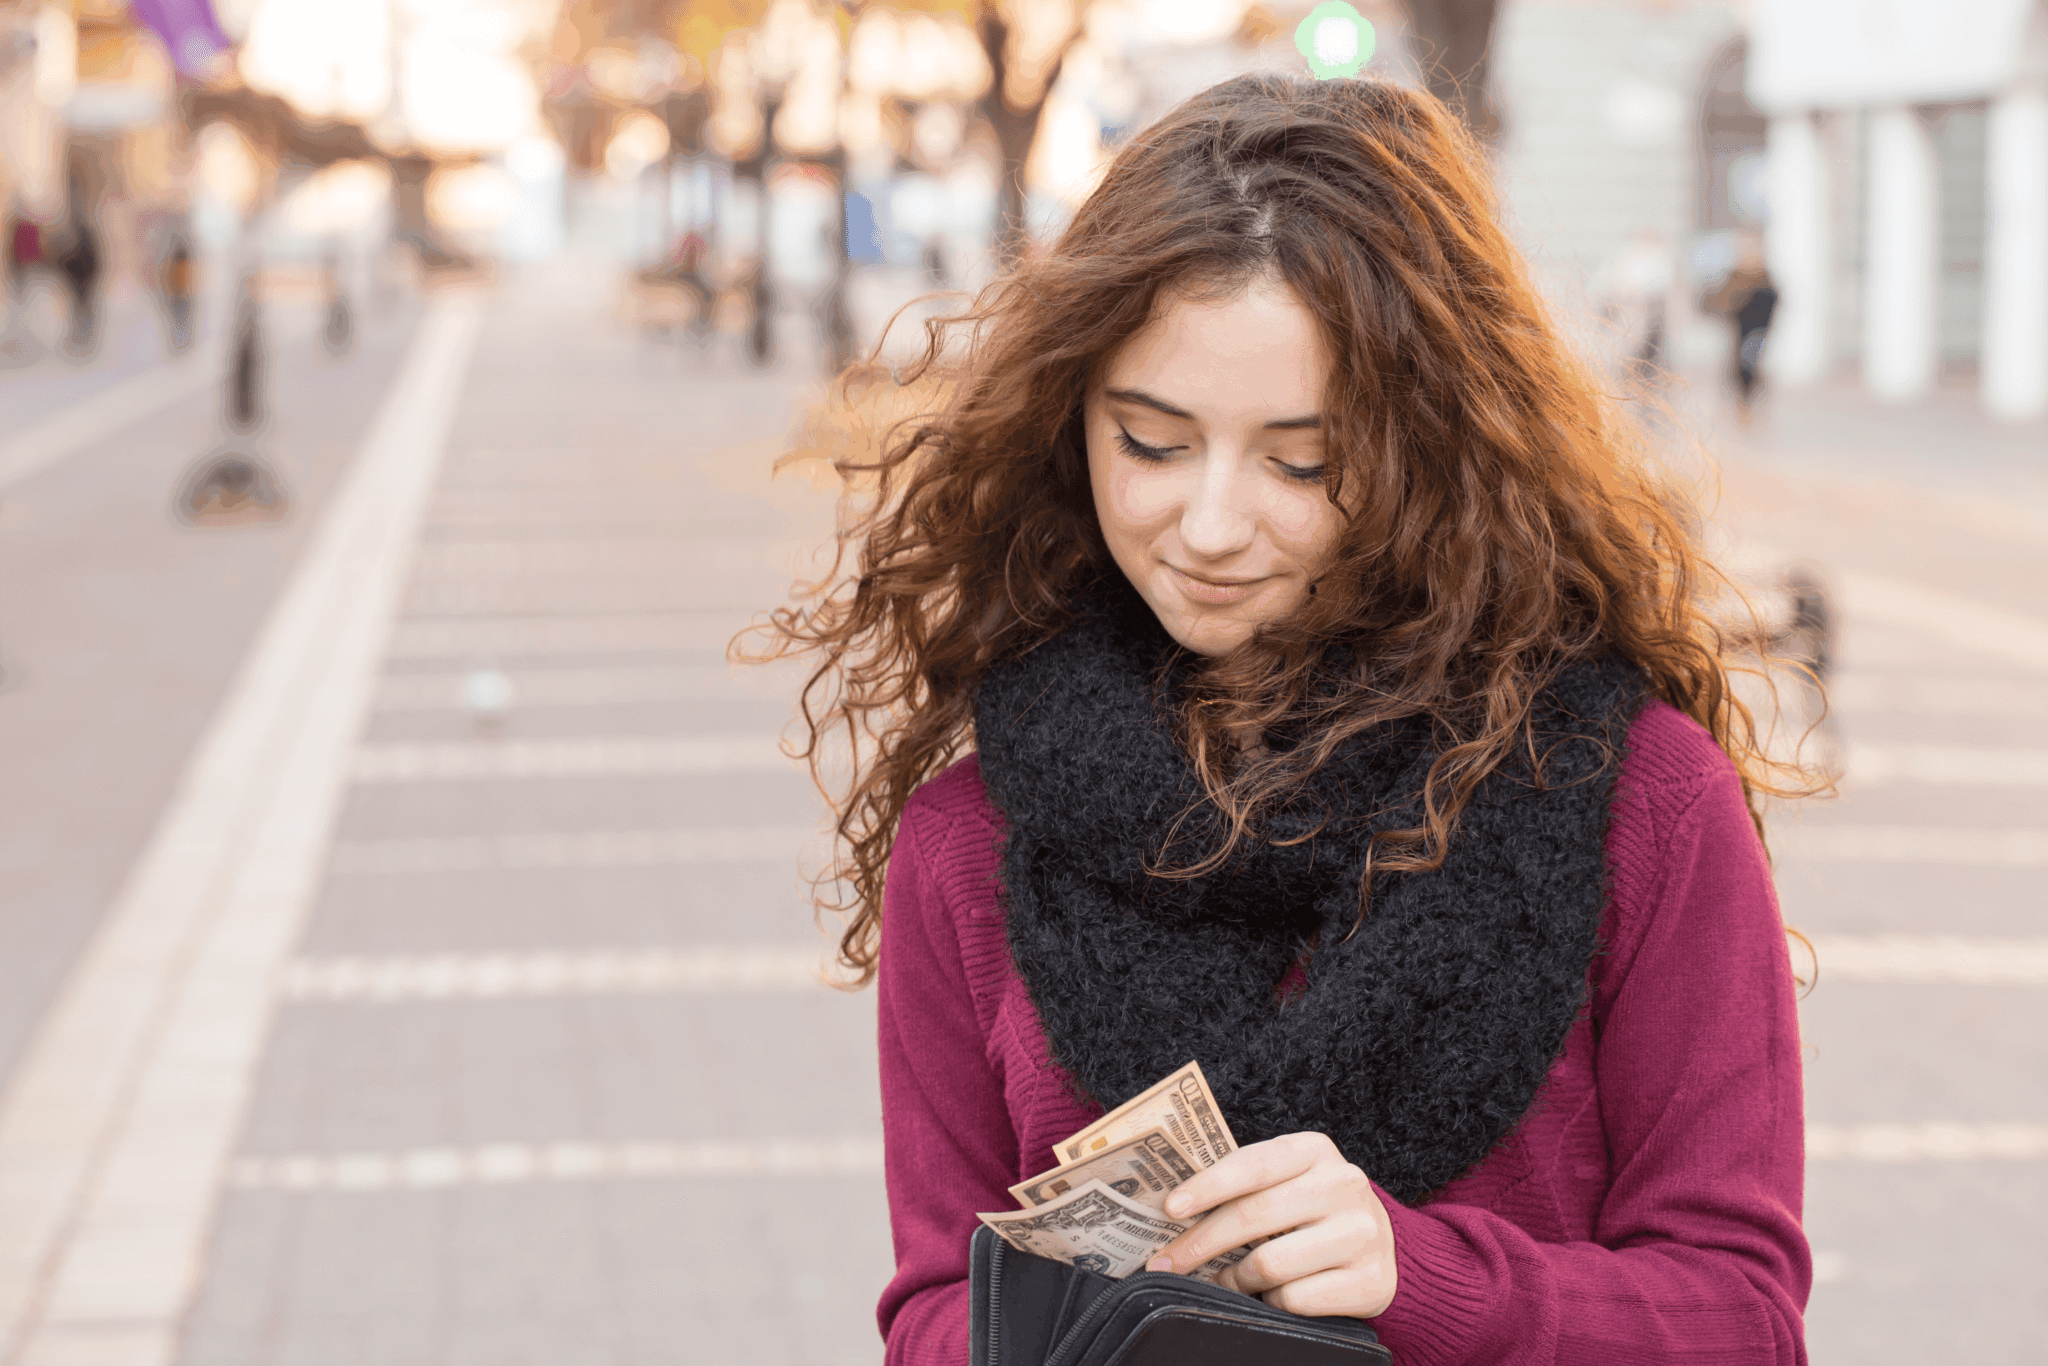 Young woman pulling dollar bills out of her wallet